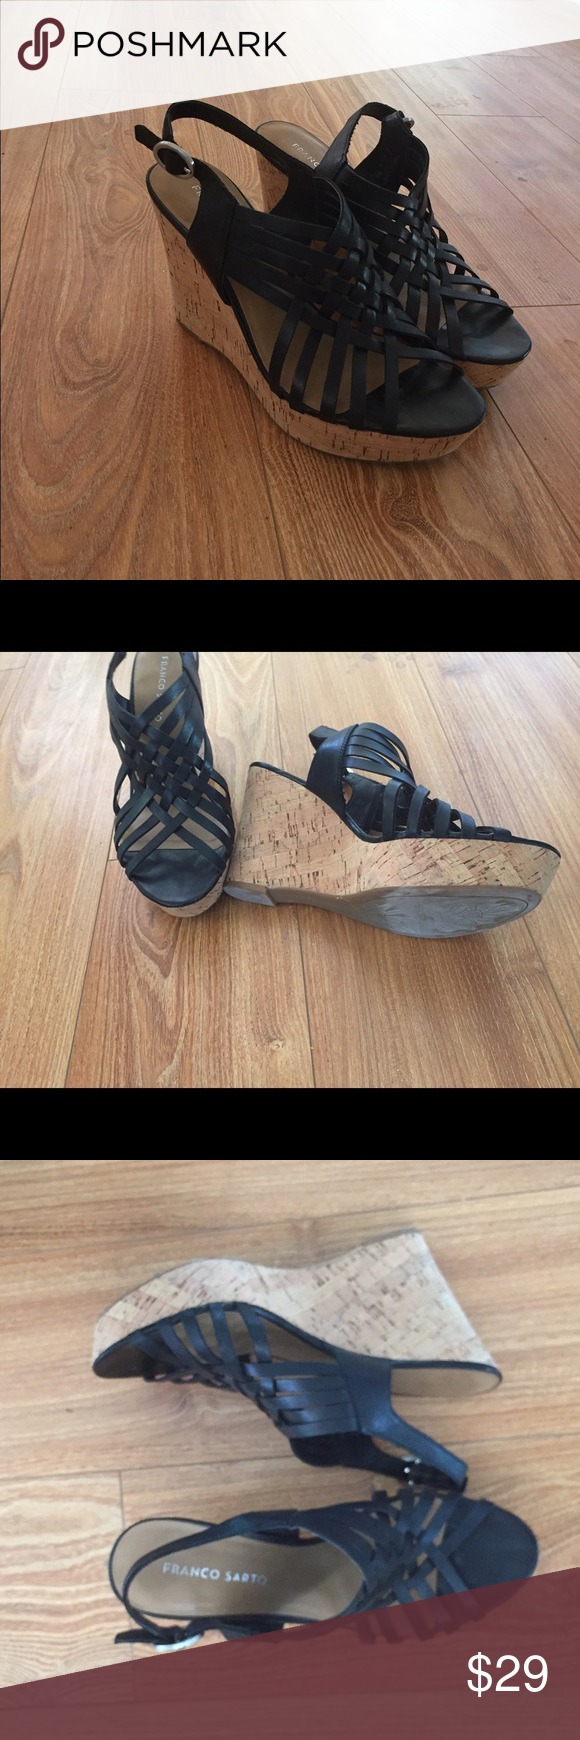 Franco Sarto black platform sandals Super comfy. In excellent condition. A bit of scuffing on soles from being worn a few times but otherwise in pristine condition. Franco Sarto Shoes Platforms